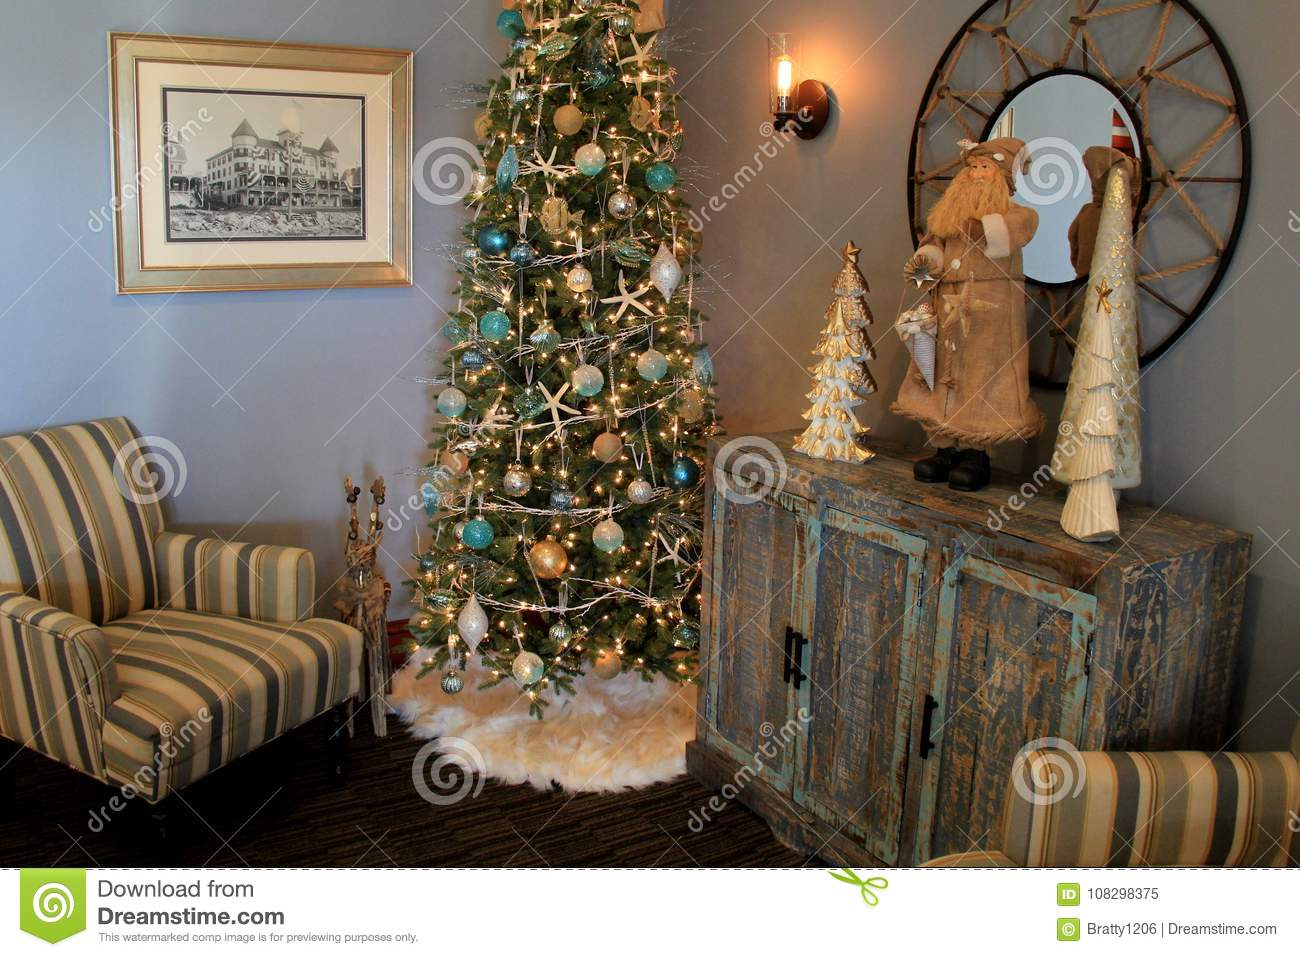 Beautiful Christmas Tree With Ornaments In A Seashore Theme With